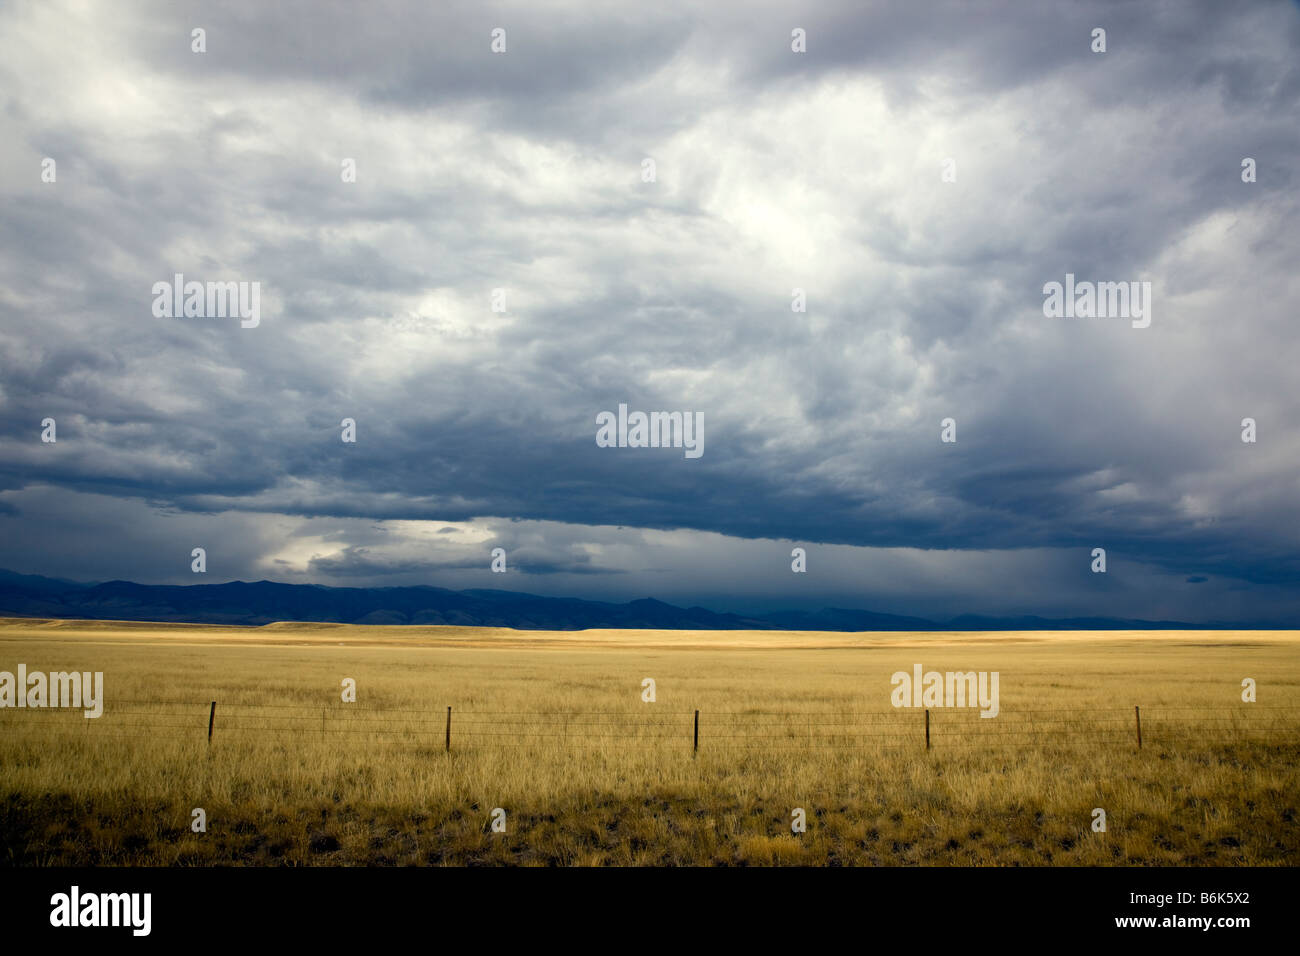 Ranchlands west of Rt. 287 towards the Shoshone National Forest - Stock Image